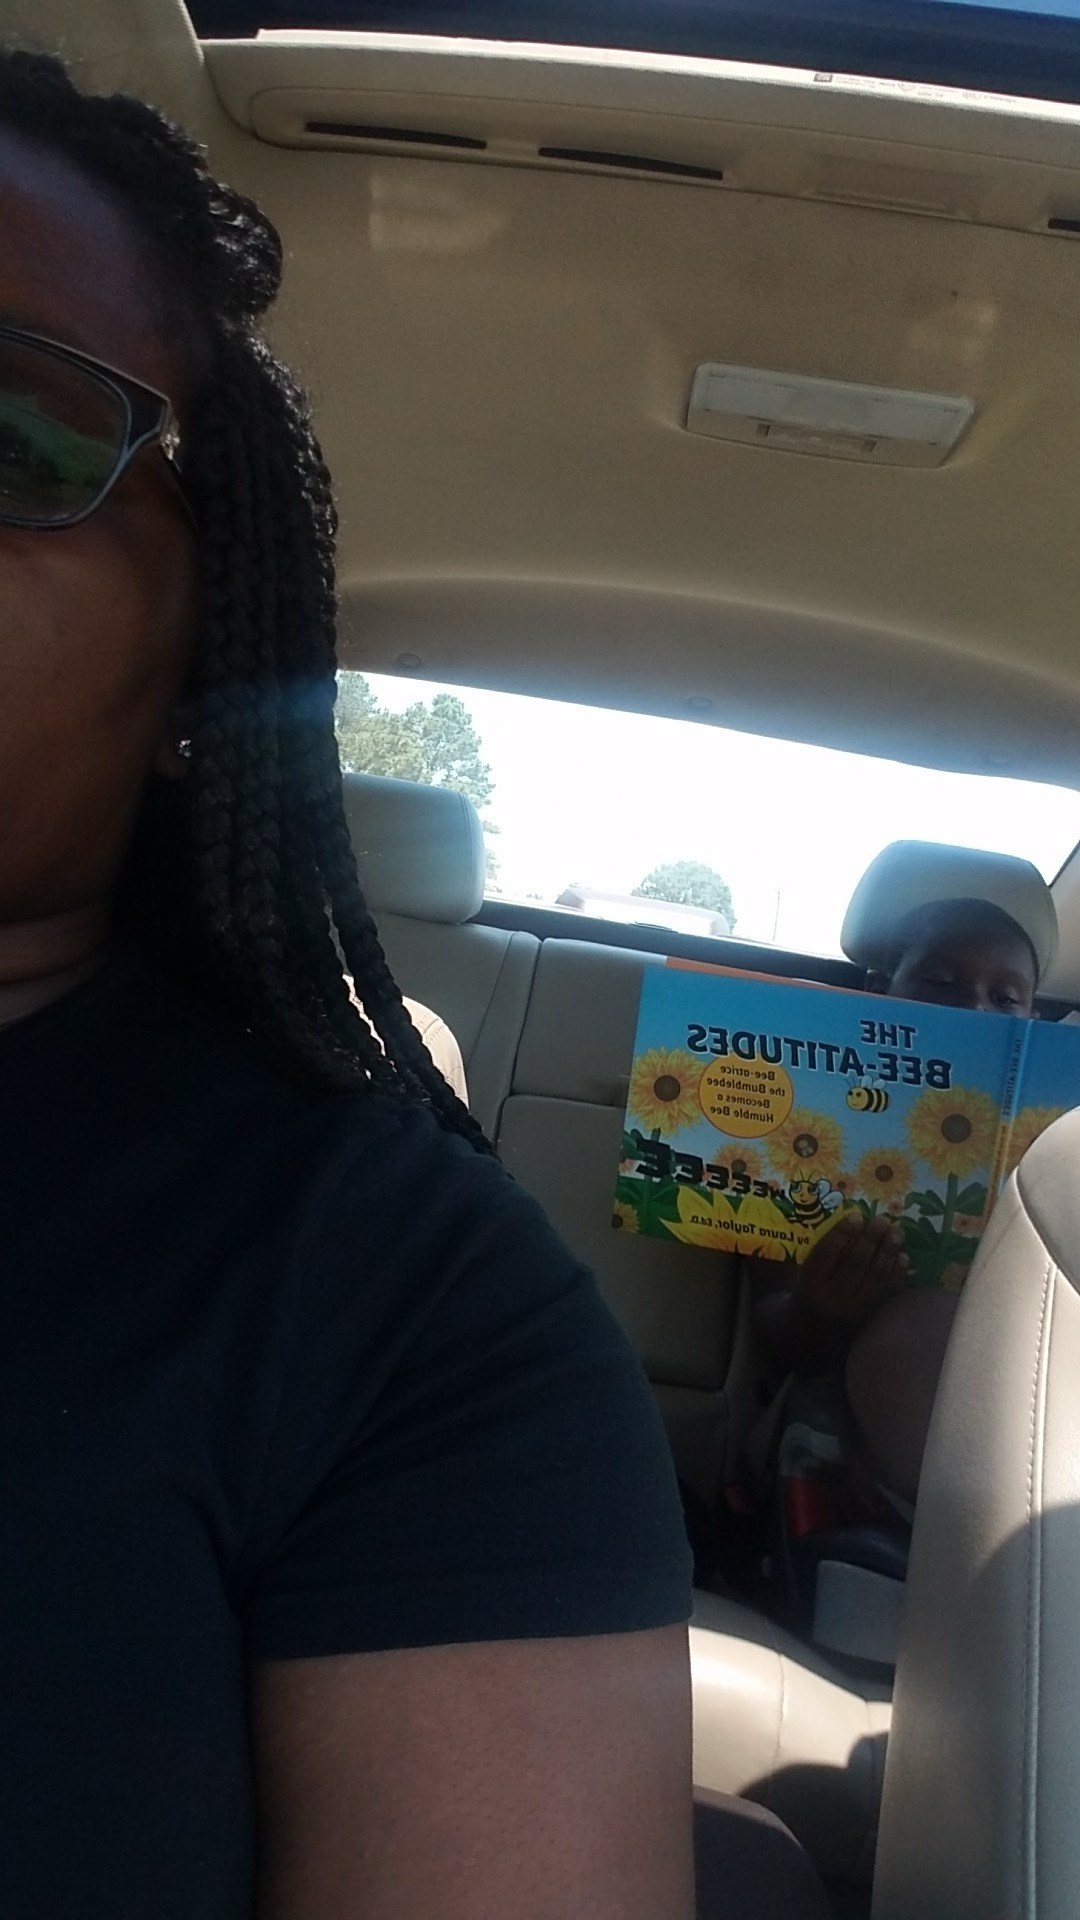 Reading THE BEE-ATITUDES in The Car